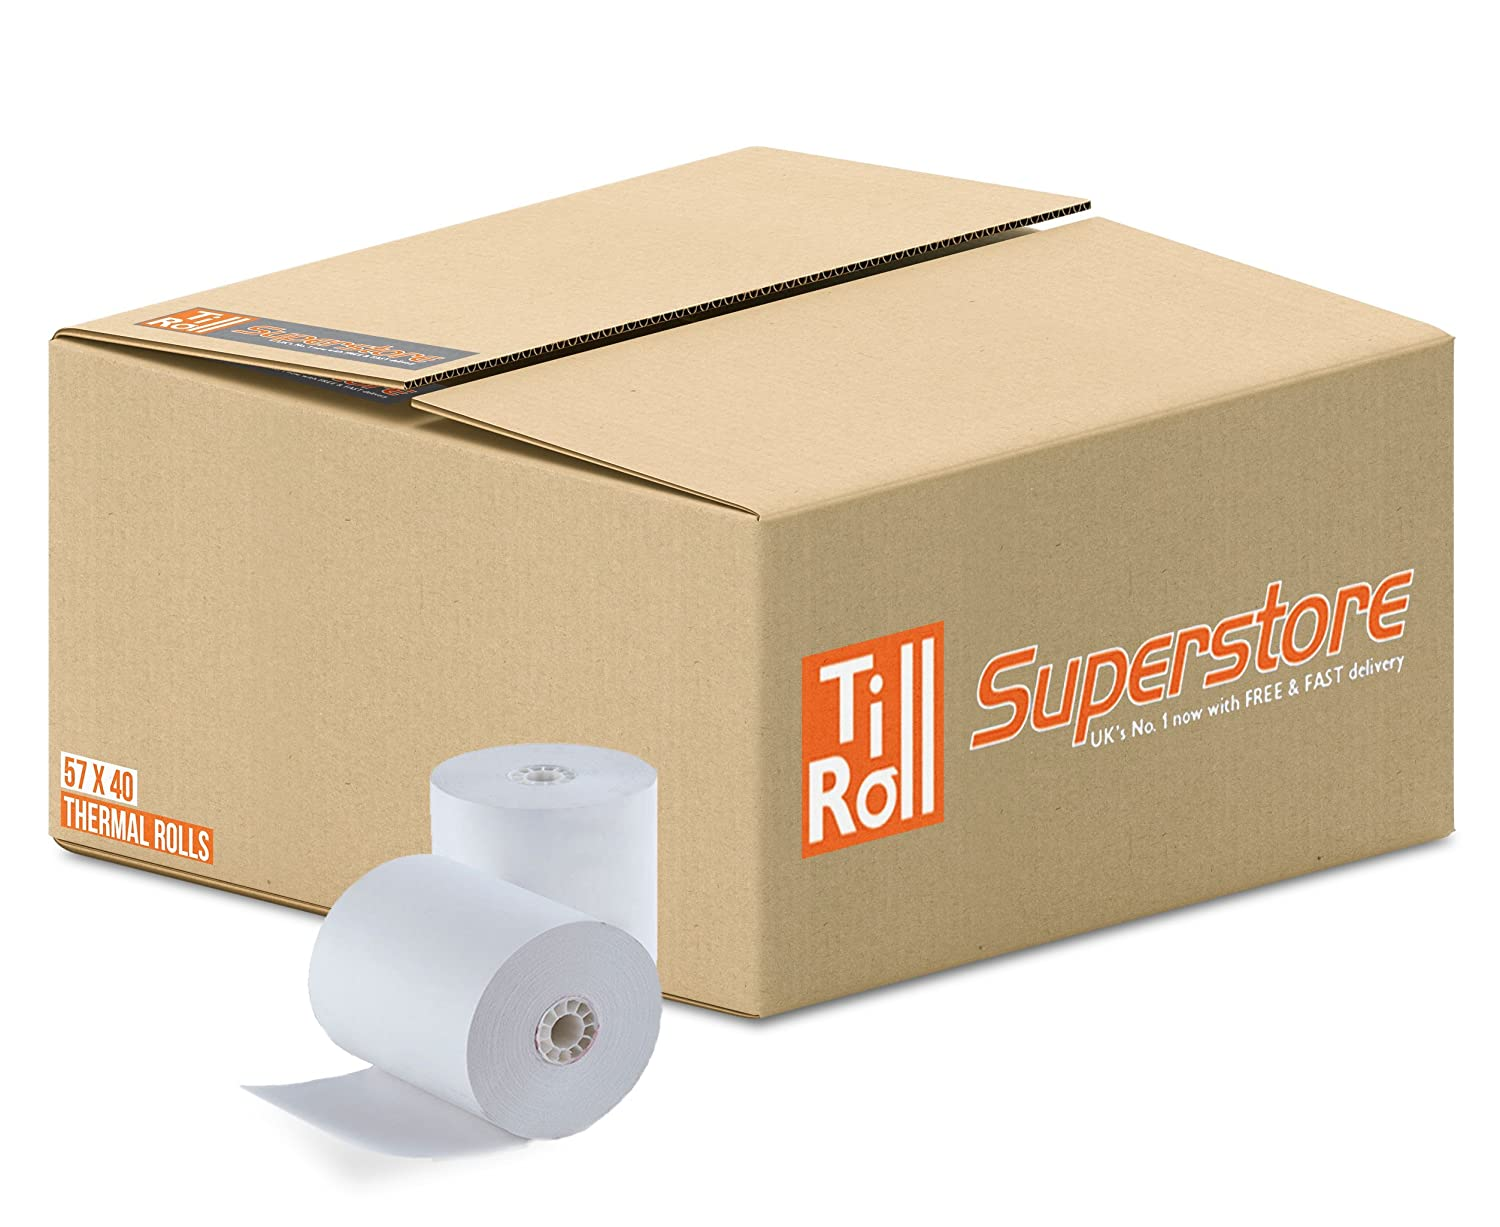 57  x 40  Thermorollen (20  Rollen) Till Roll Superstore